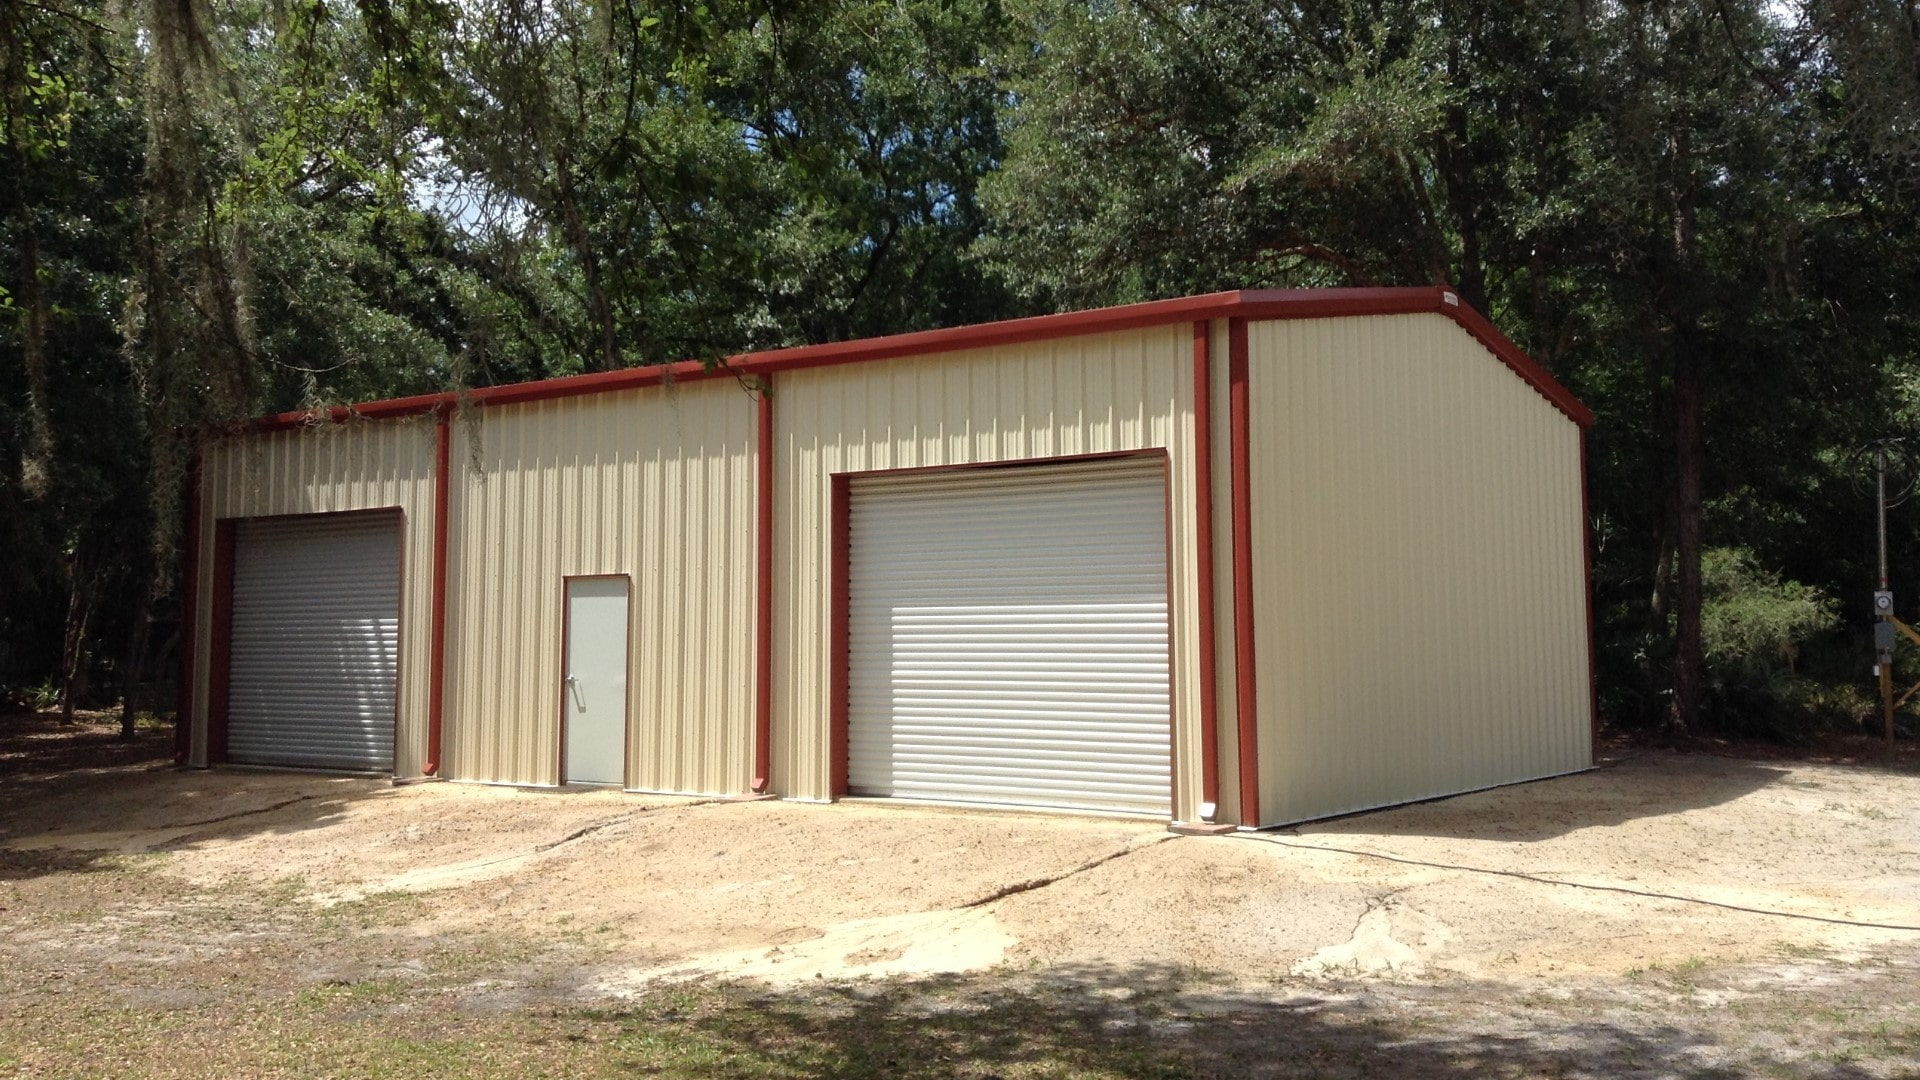 Tan metal garage kit with red trim, walk door in center of front sidewall with rollup door on each side.